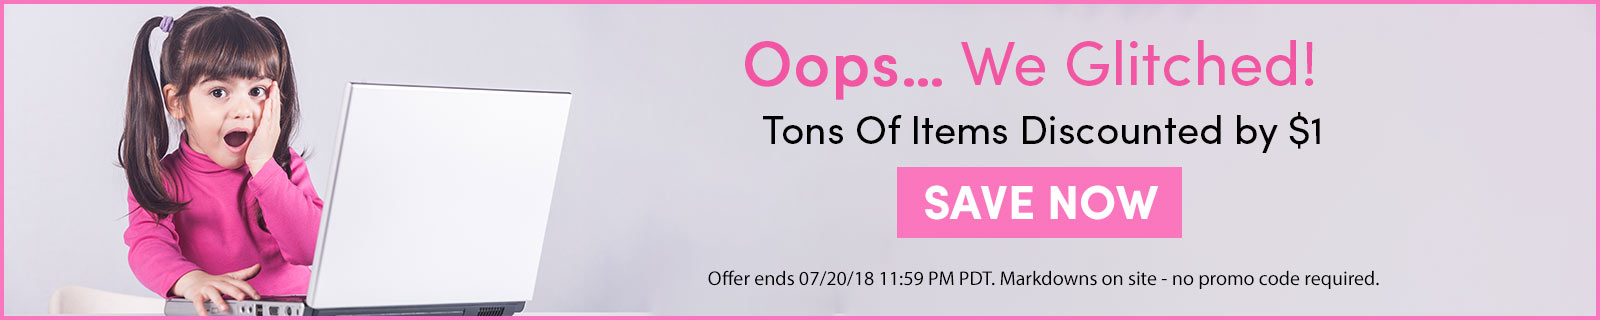 Oops… We Glitched! Tons Of Items Discounted by $1 SAVE NOW